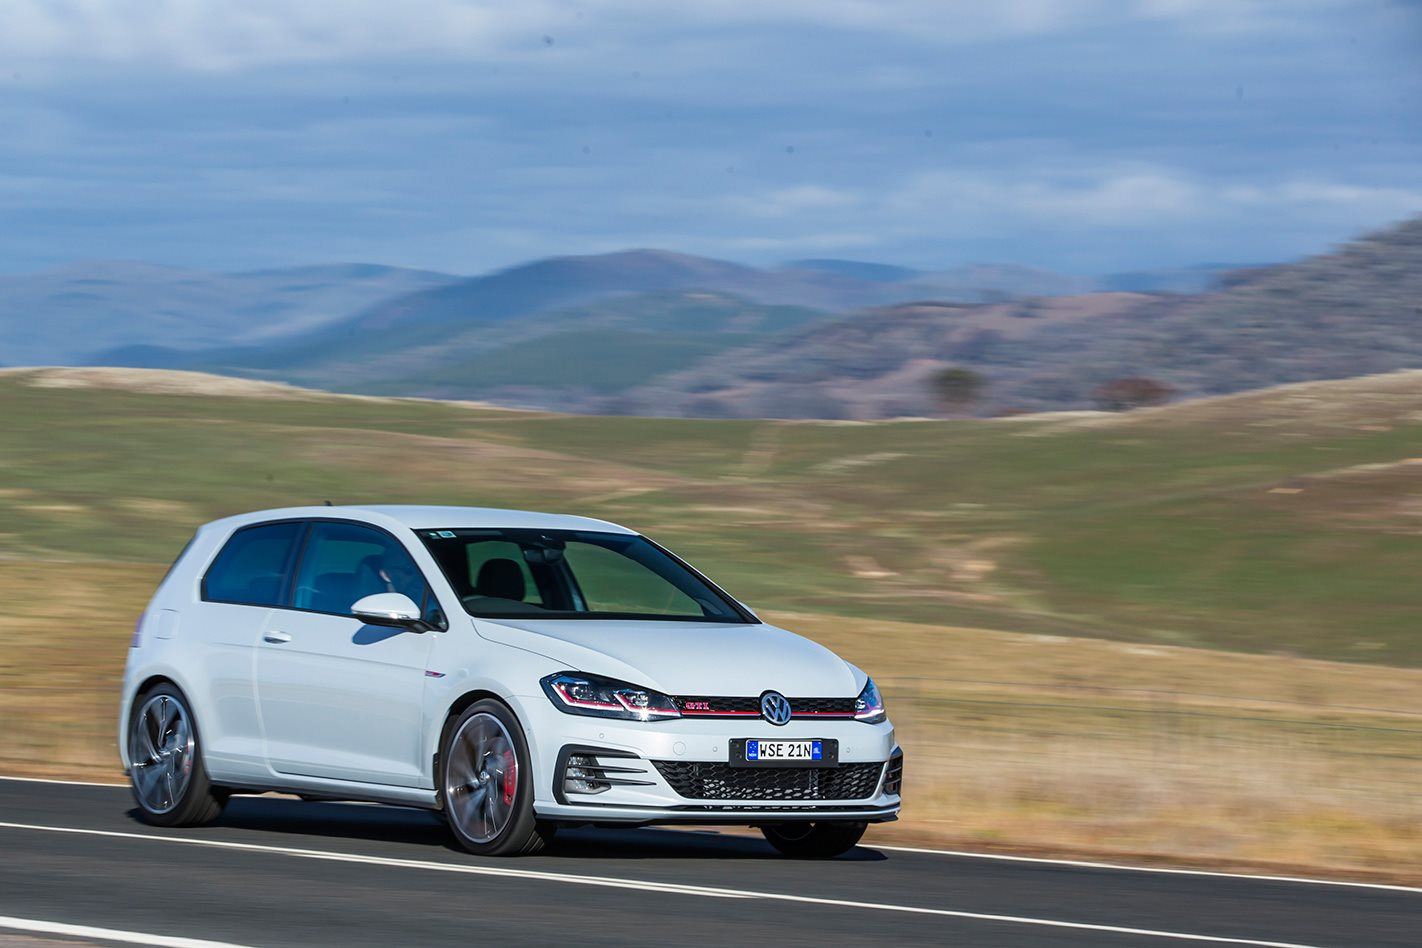 2017 Volkswagen Golf GTI Performance driving.jpg